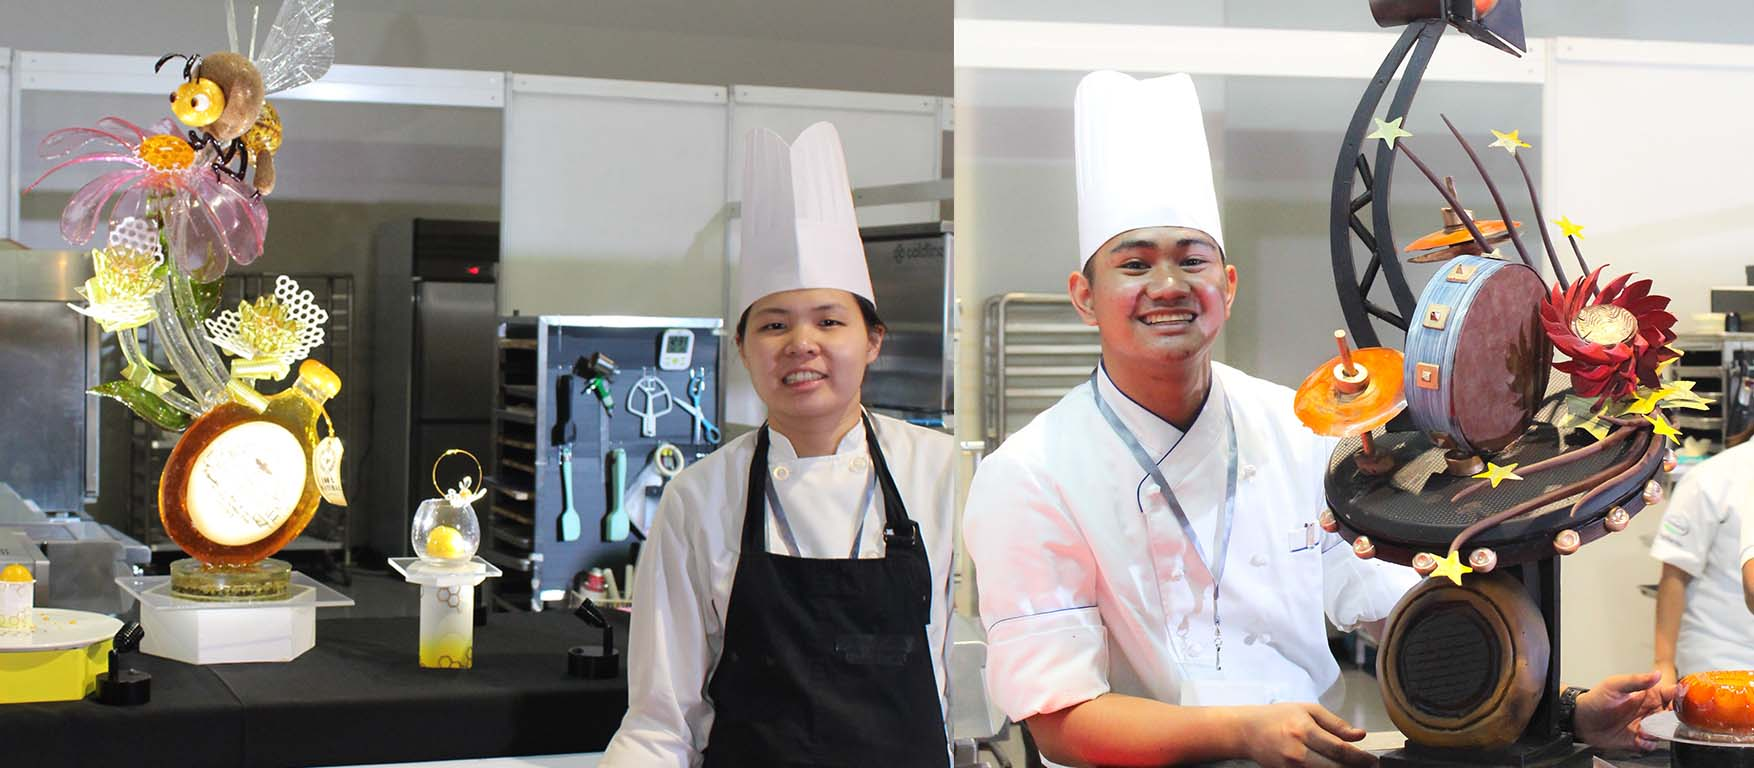 Chefs Competition in Pastry Art and Baking